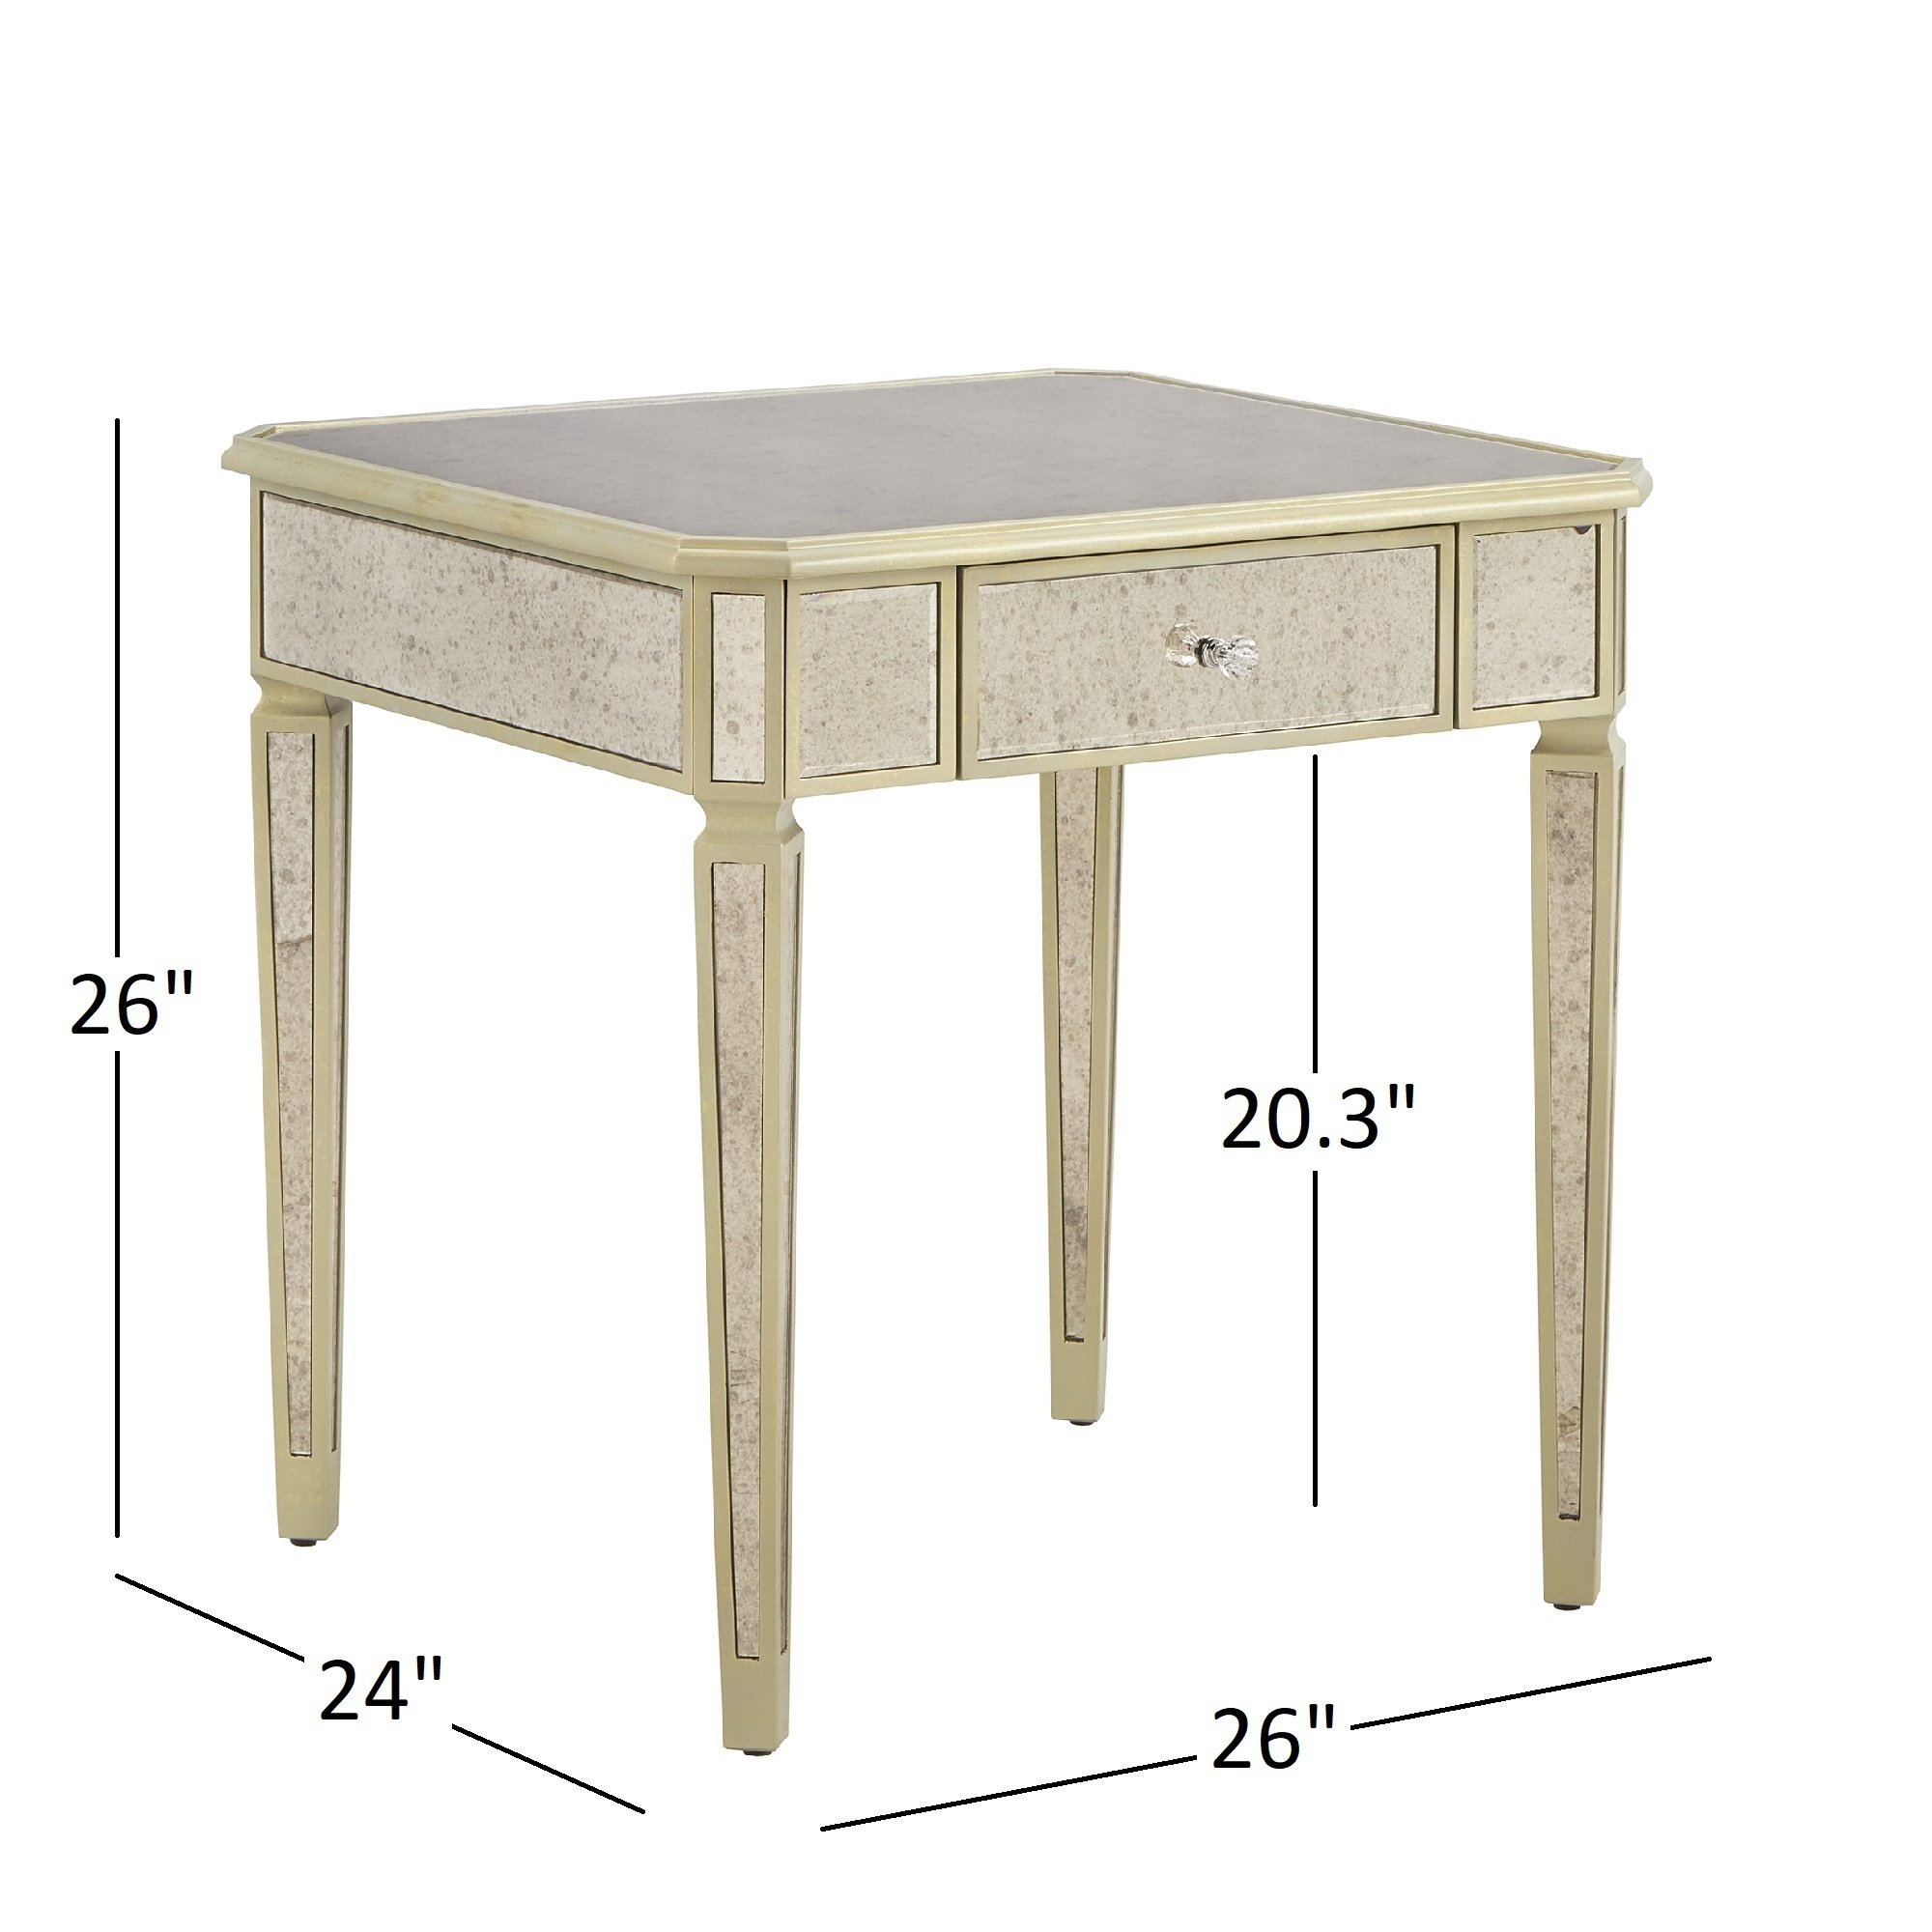 clara antique gold drawer mirrored end table inspire bold faceted accent with glass top free shipping today wood nesting tables zebi oak plant stand small corner desk cabinet